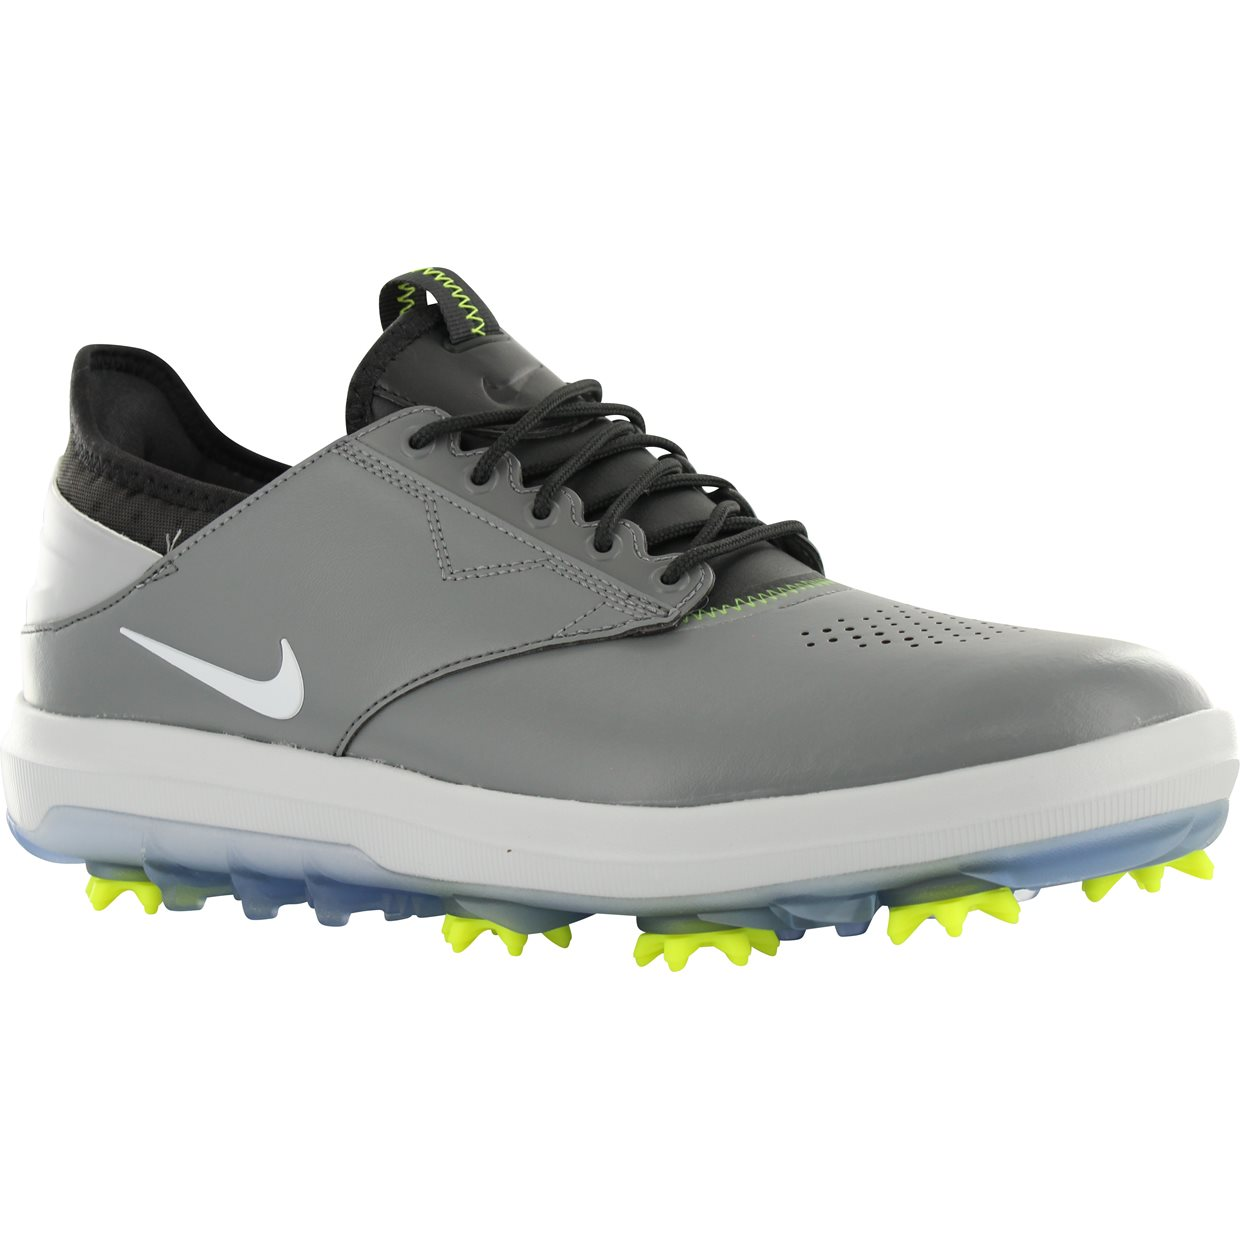 c2f4aa4fe0c003 Nike Air Zoom Direct Golf Shoe in Cool Grey Black Wolf Anthracite